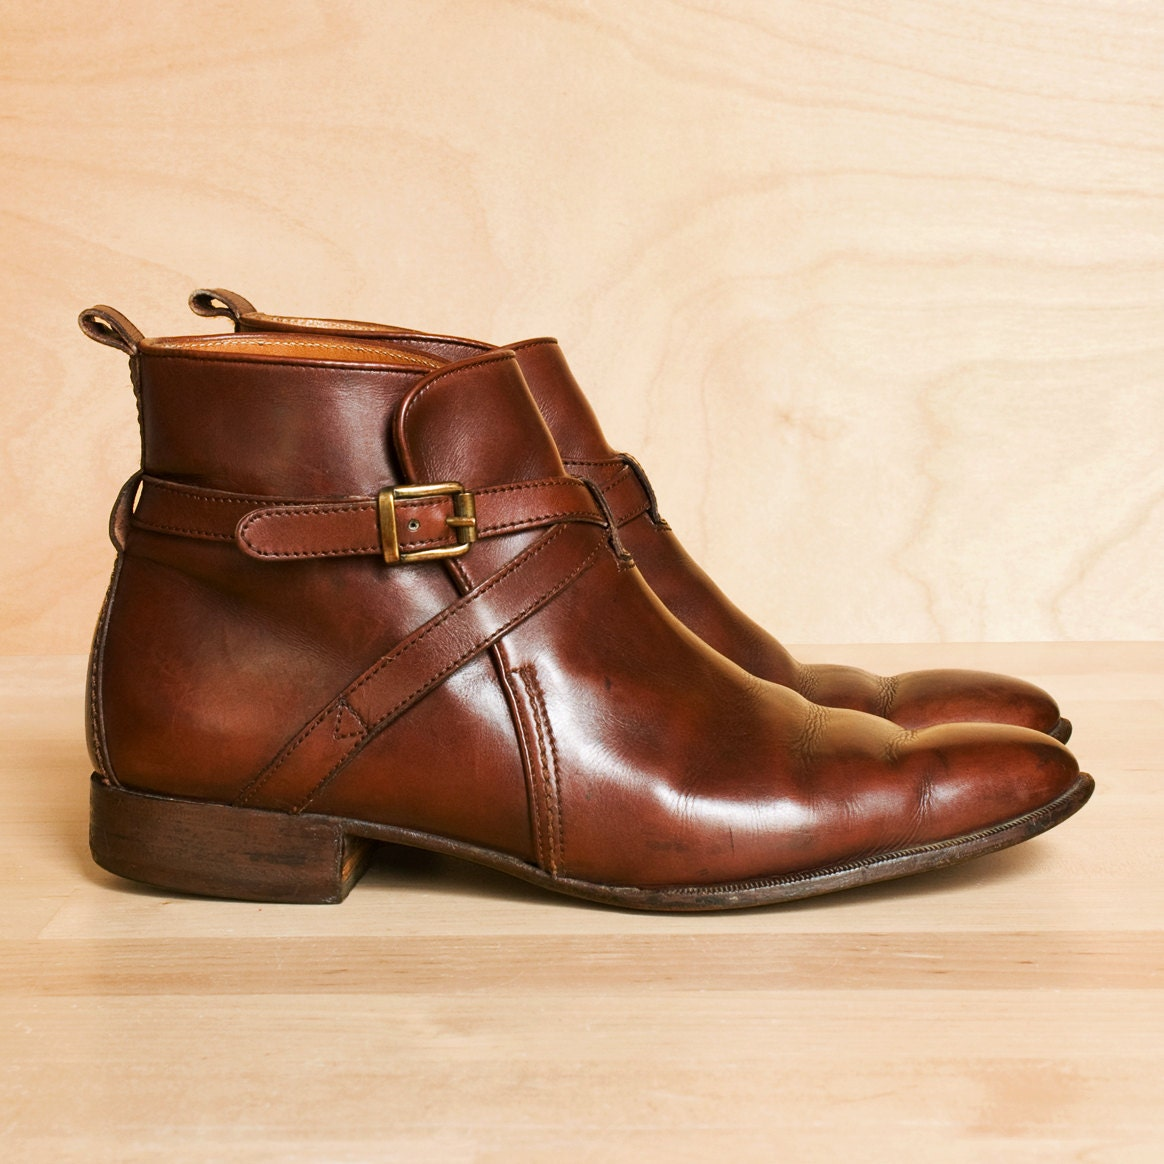 vintage ralph ankle boots 8 5 leather by